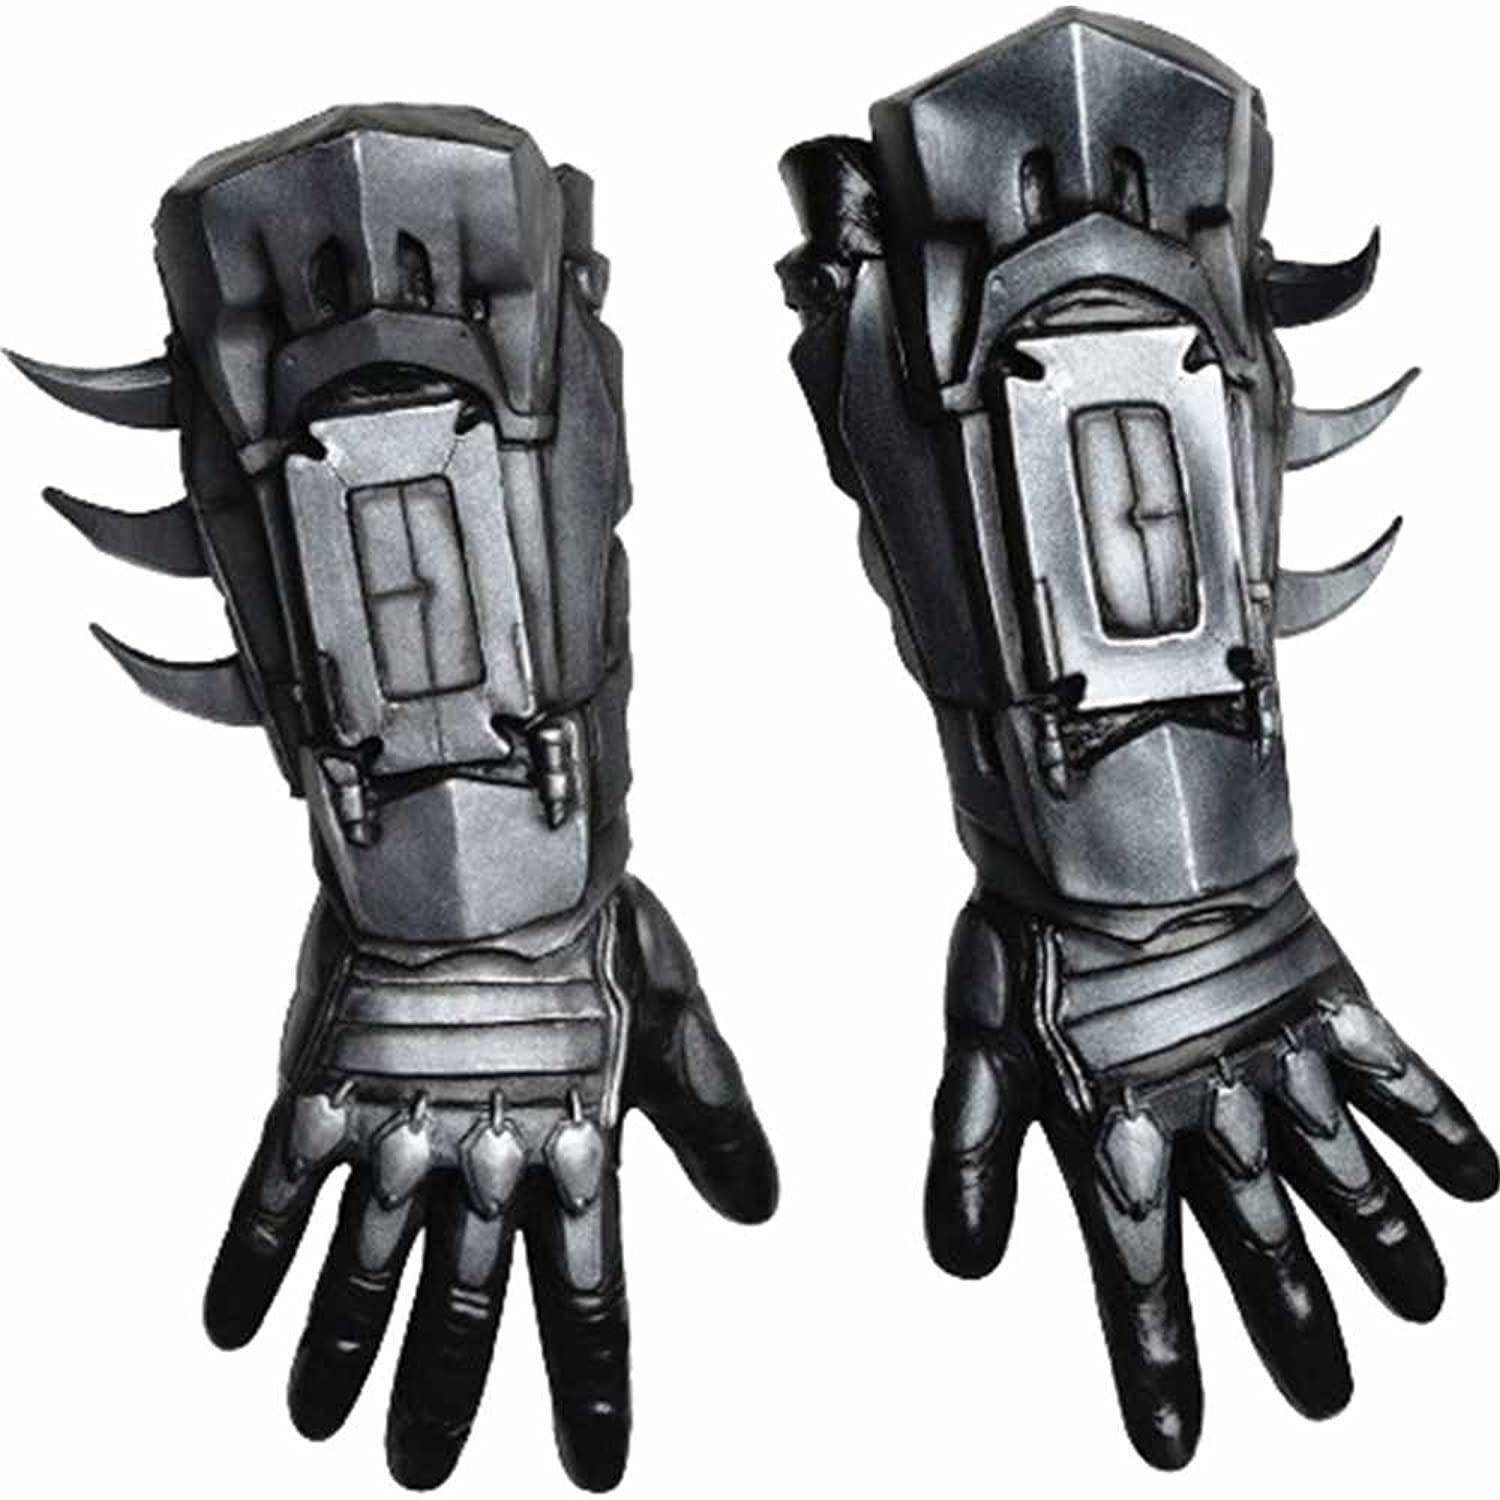 Mens sizes in gloves - Amazon Com Rubie S Costume Men S Arkham City Deluxe Batman Gloves Black One Size Clothing